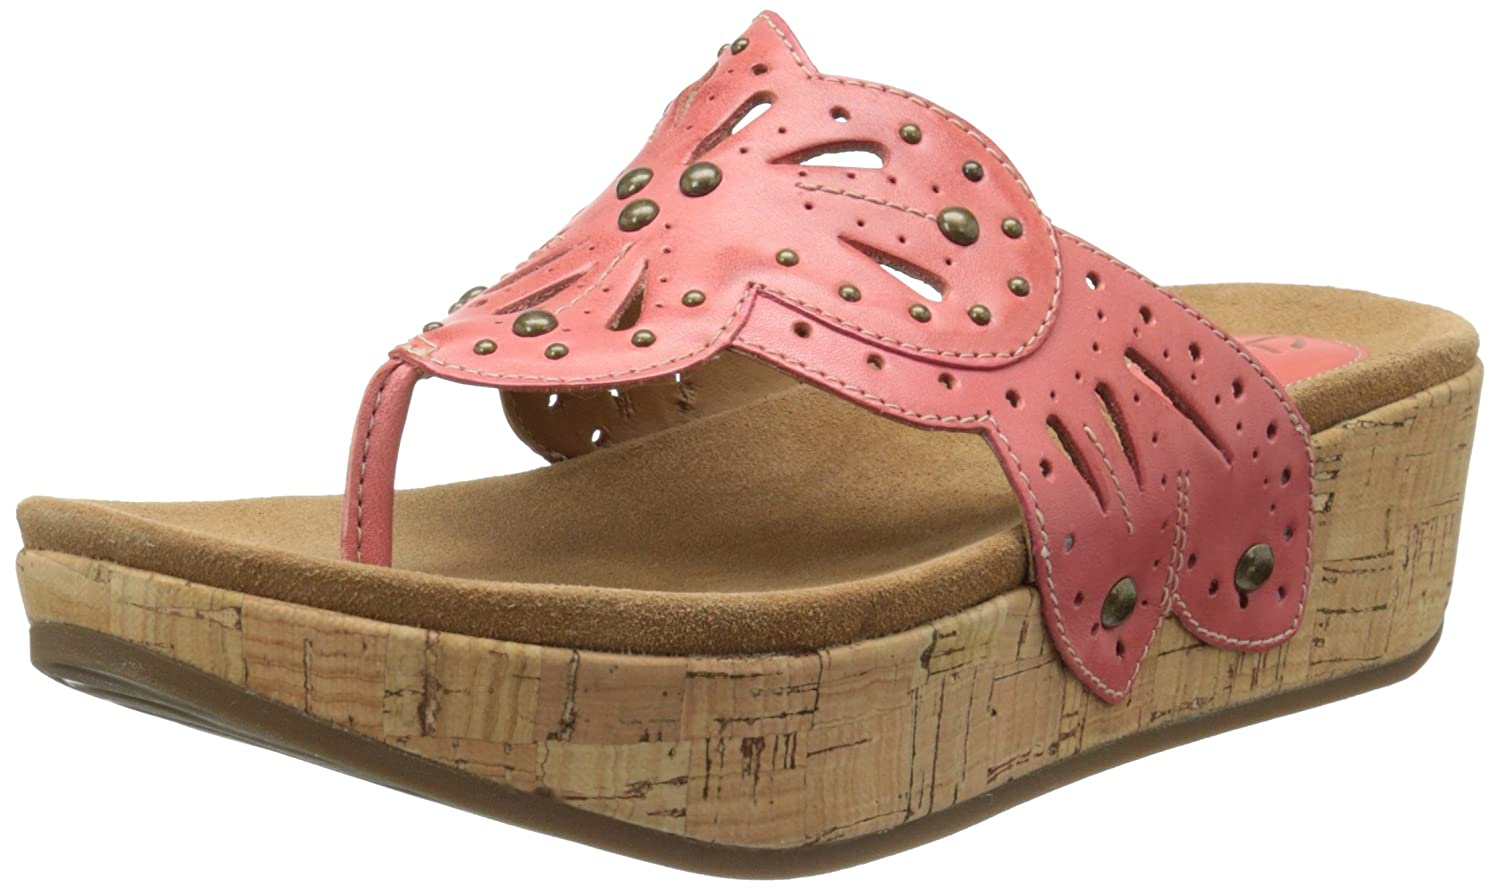 CLARKS Women's Palima Palm Wedge Sandal B00MUBWLA4 Parent